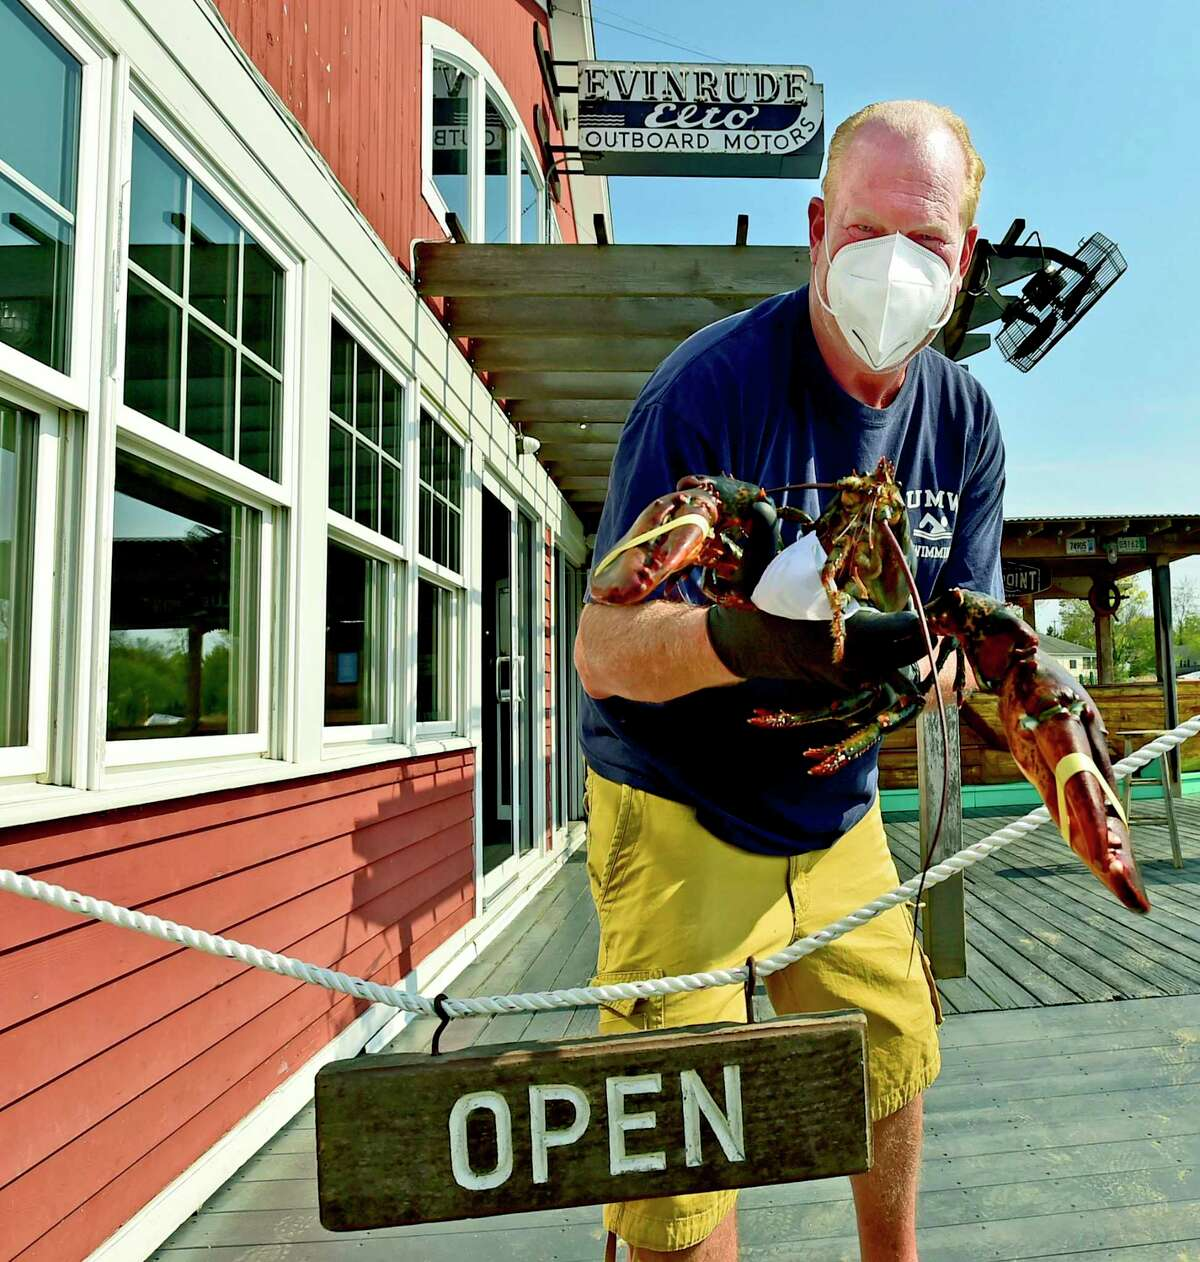 Branford, Connecticut - Friday, May 15, 2020: Christopher Conlin owner of Lenny's Indian Head Inn, a classic New England seafood restaurant holds a 9-pound lobster at the new entrance on the back deck and patio to maintain an adequate entrance and egress to control social-distancing flow as people get their food as Connecticut restaurants prepare for a staged May 20th opening due to the Coronavirus / Covid-19 pandemic.